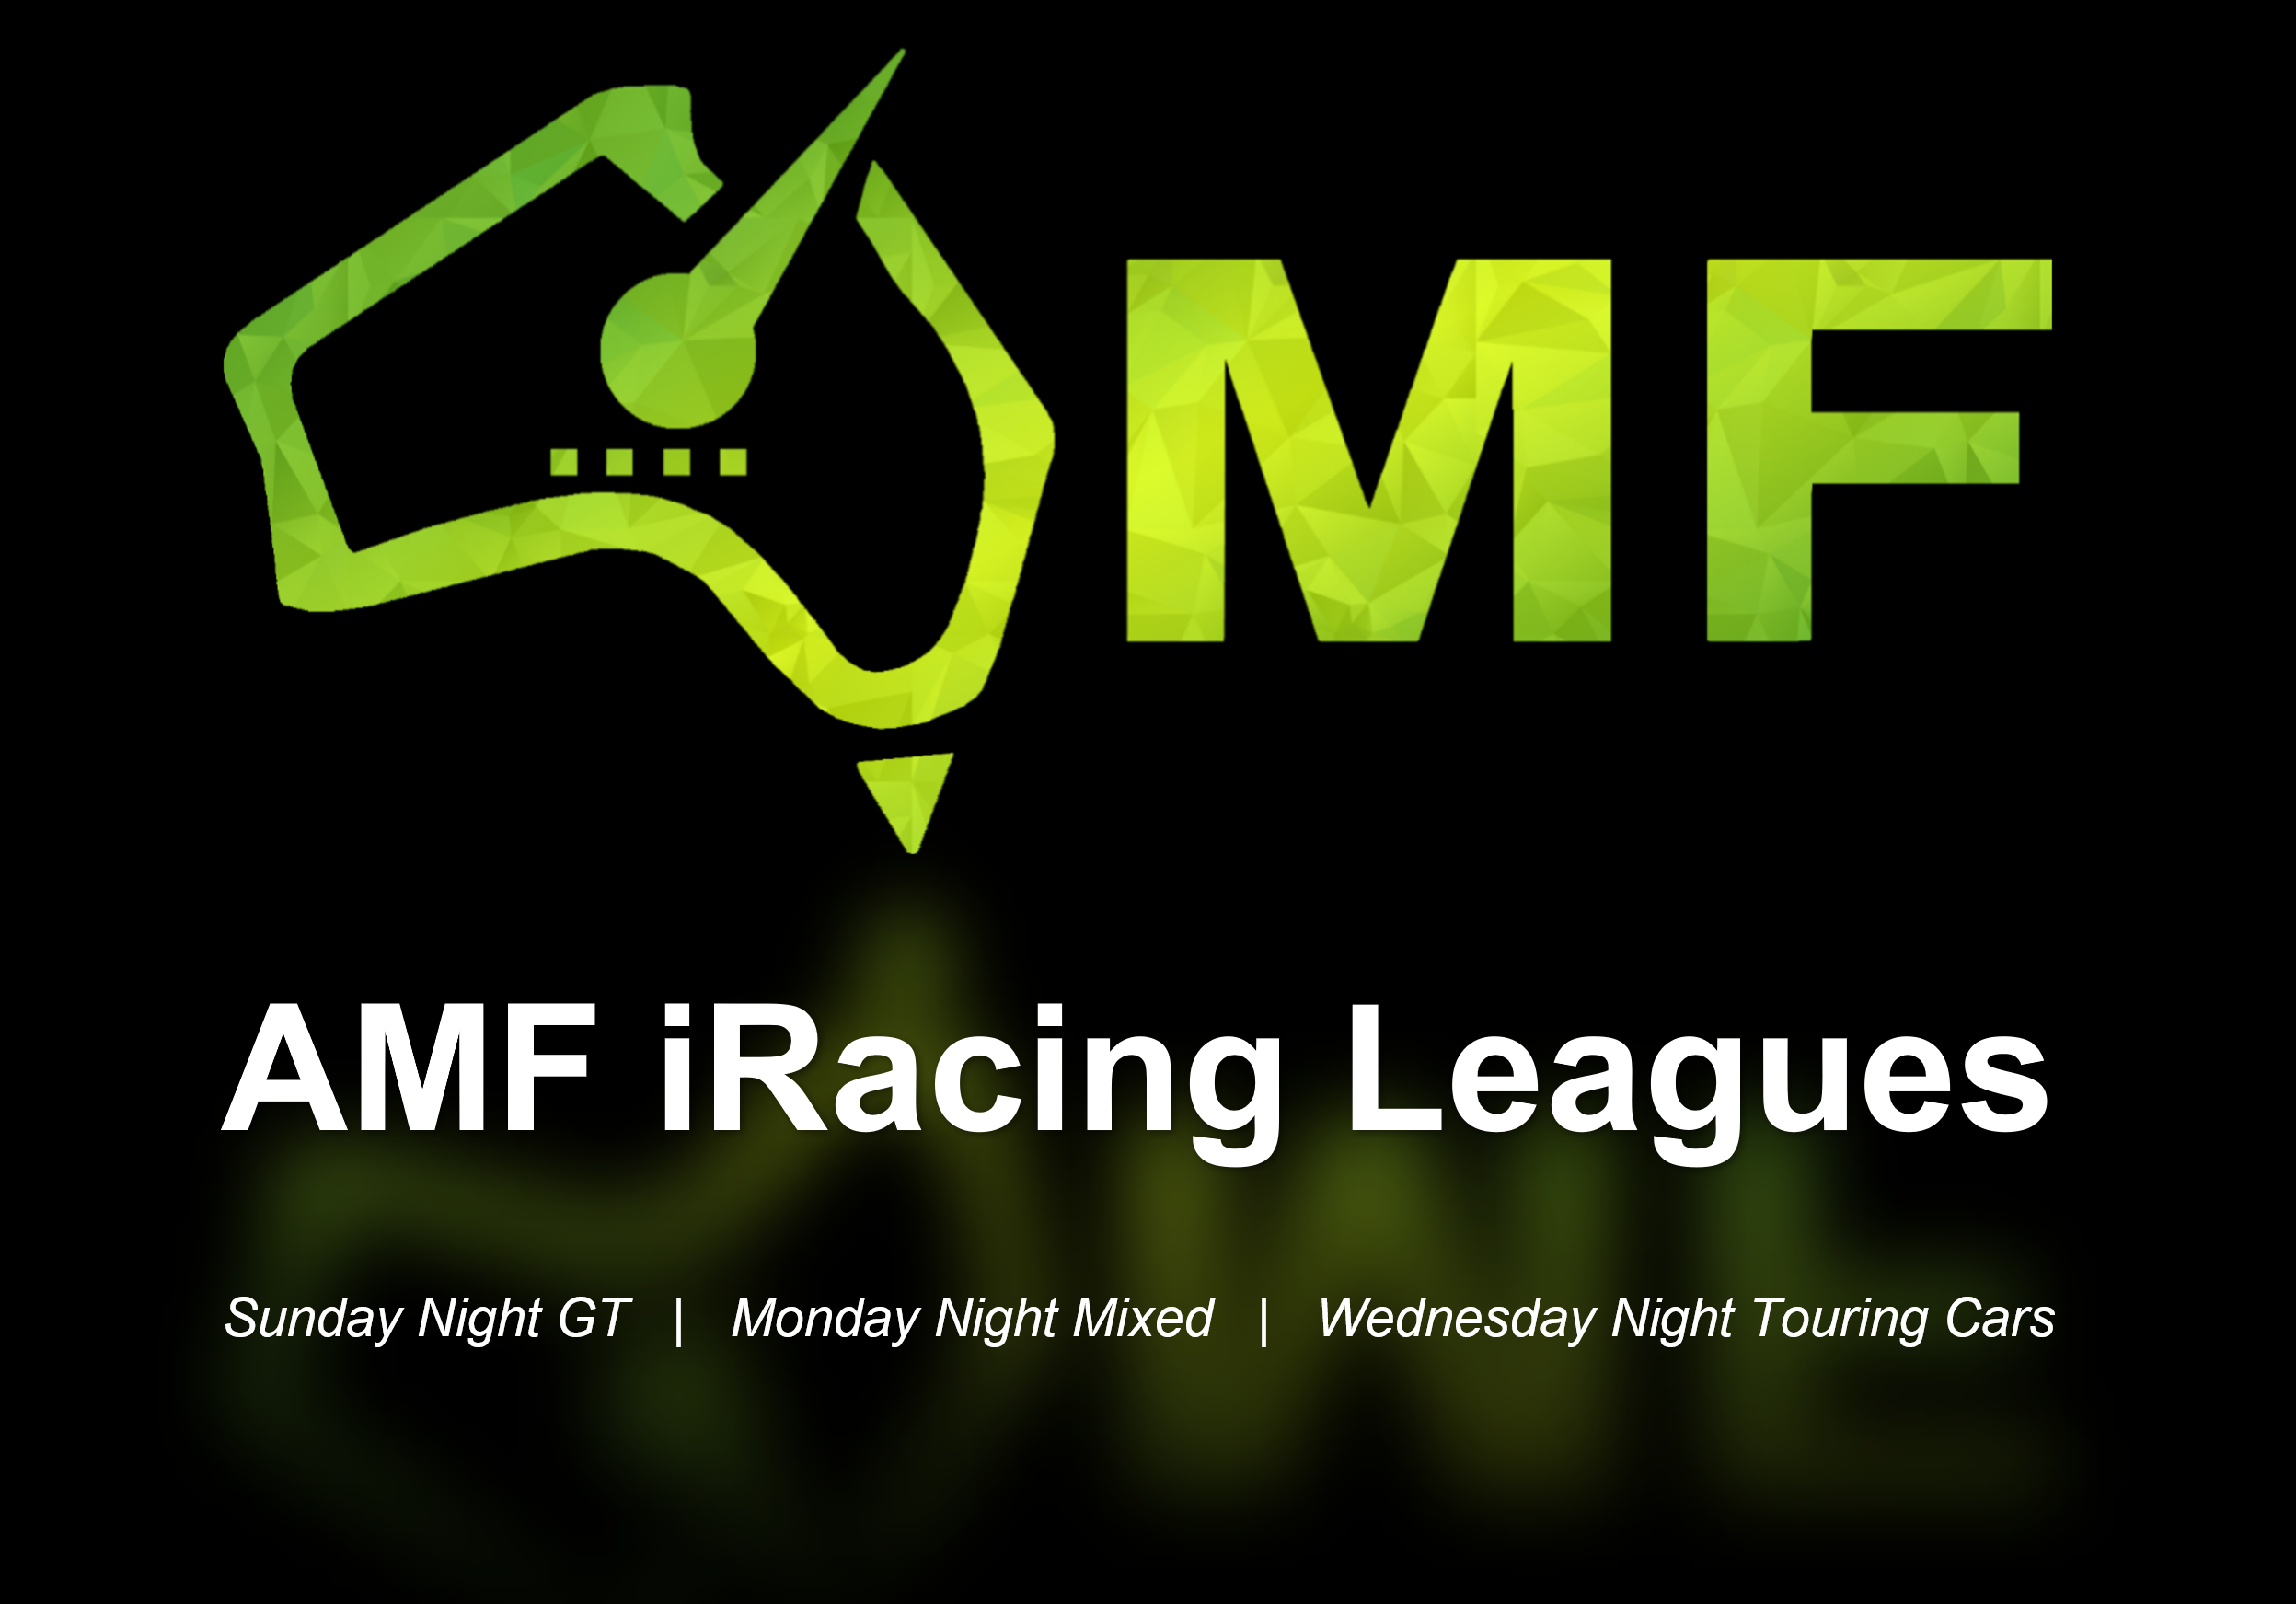 AMF iRacing Leagues